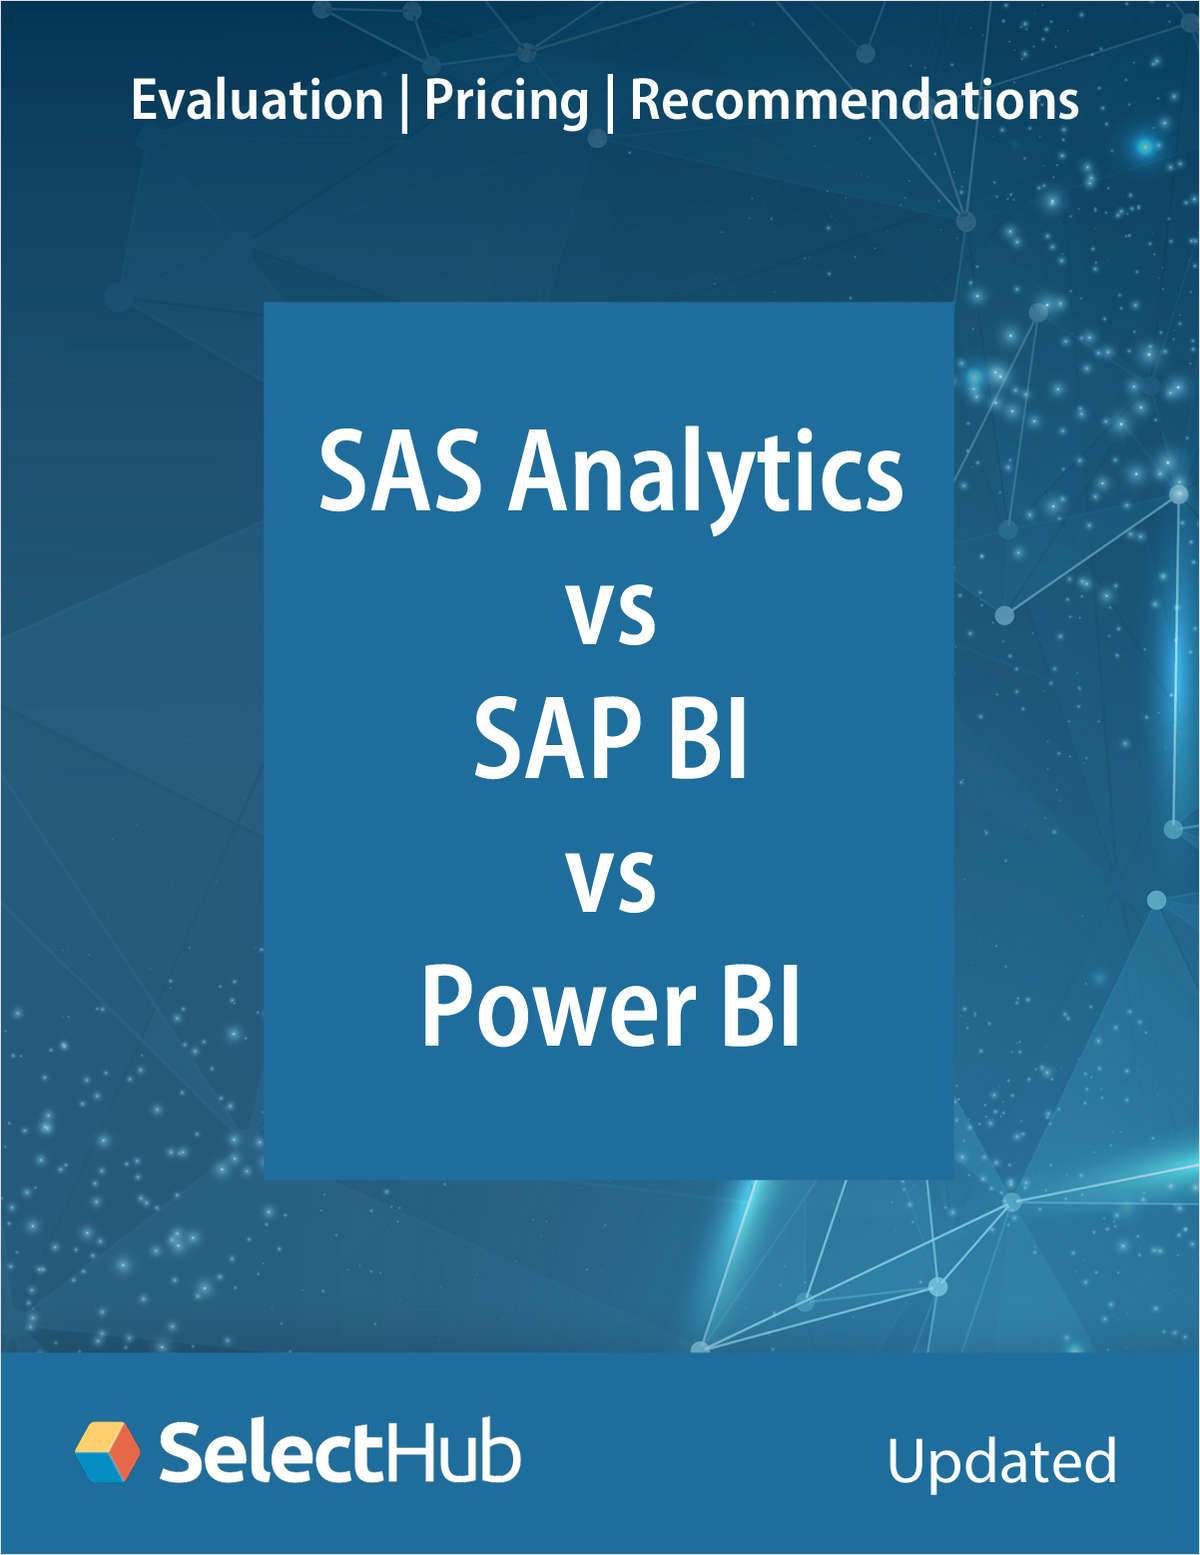 SAS Analytics vs. SAP BI vs. Power BI―Expert Evaluations, Pricing & Recommendations